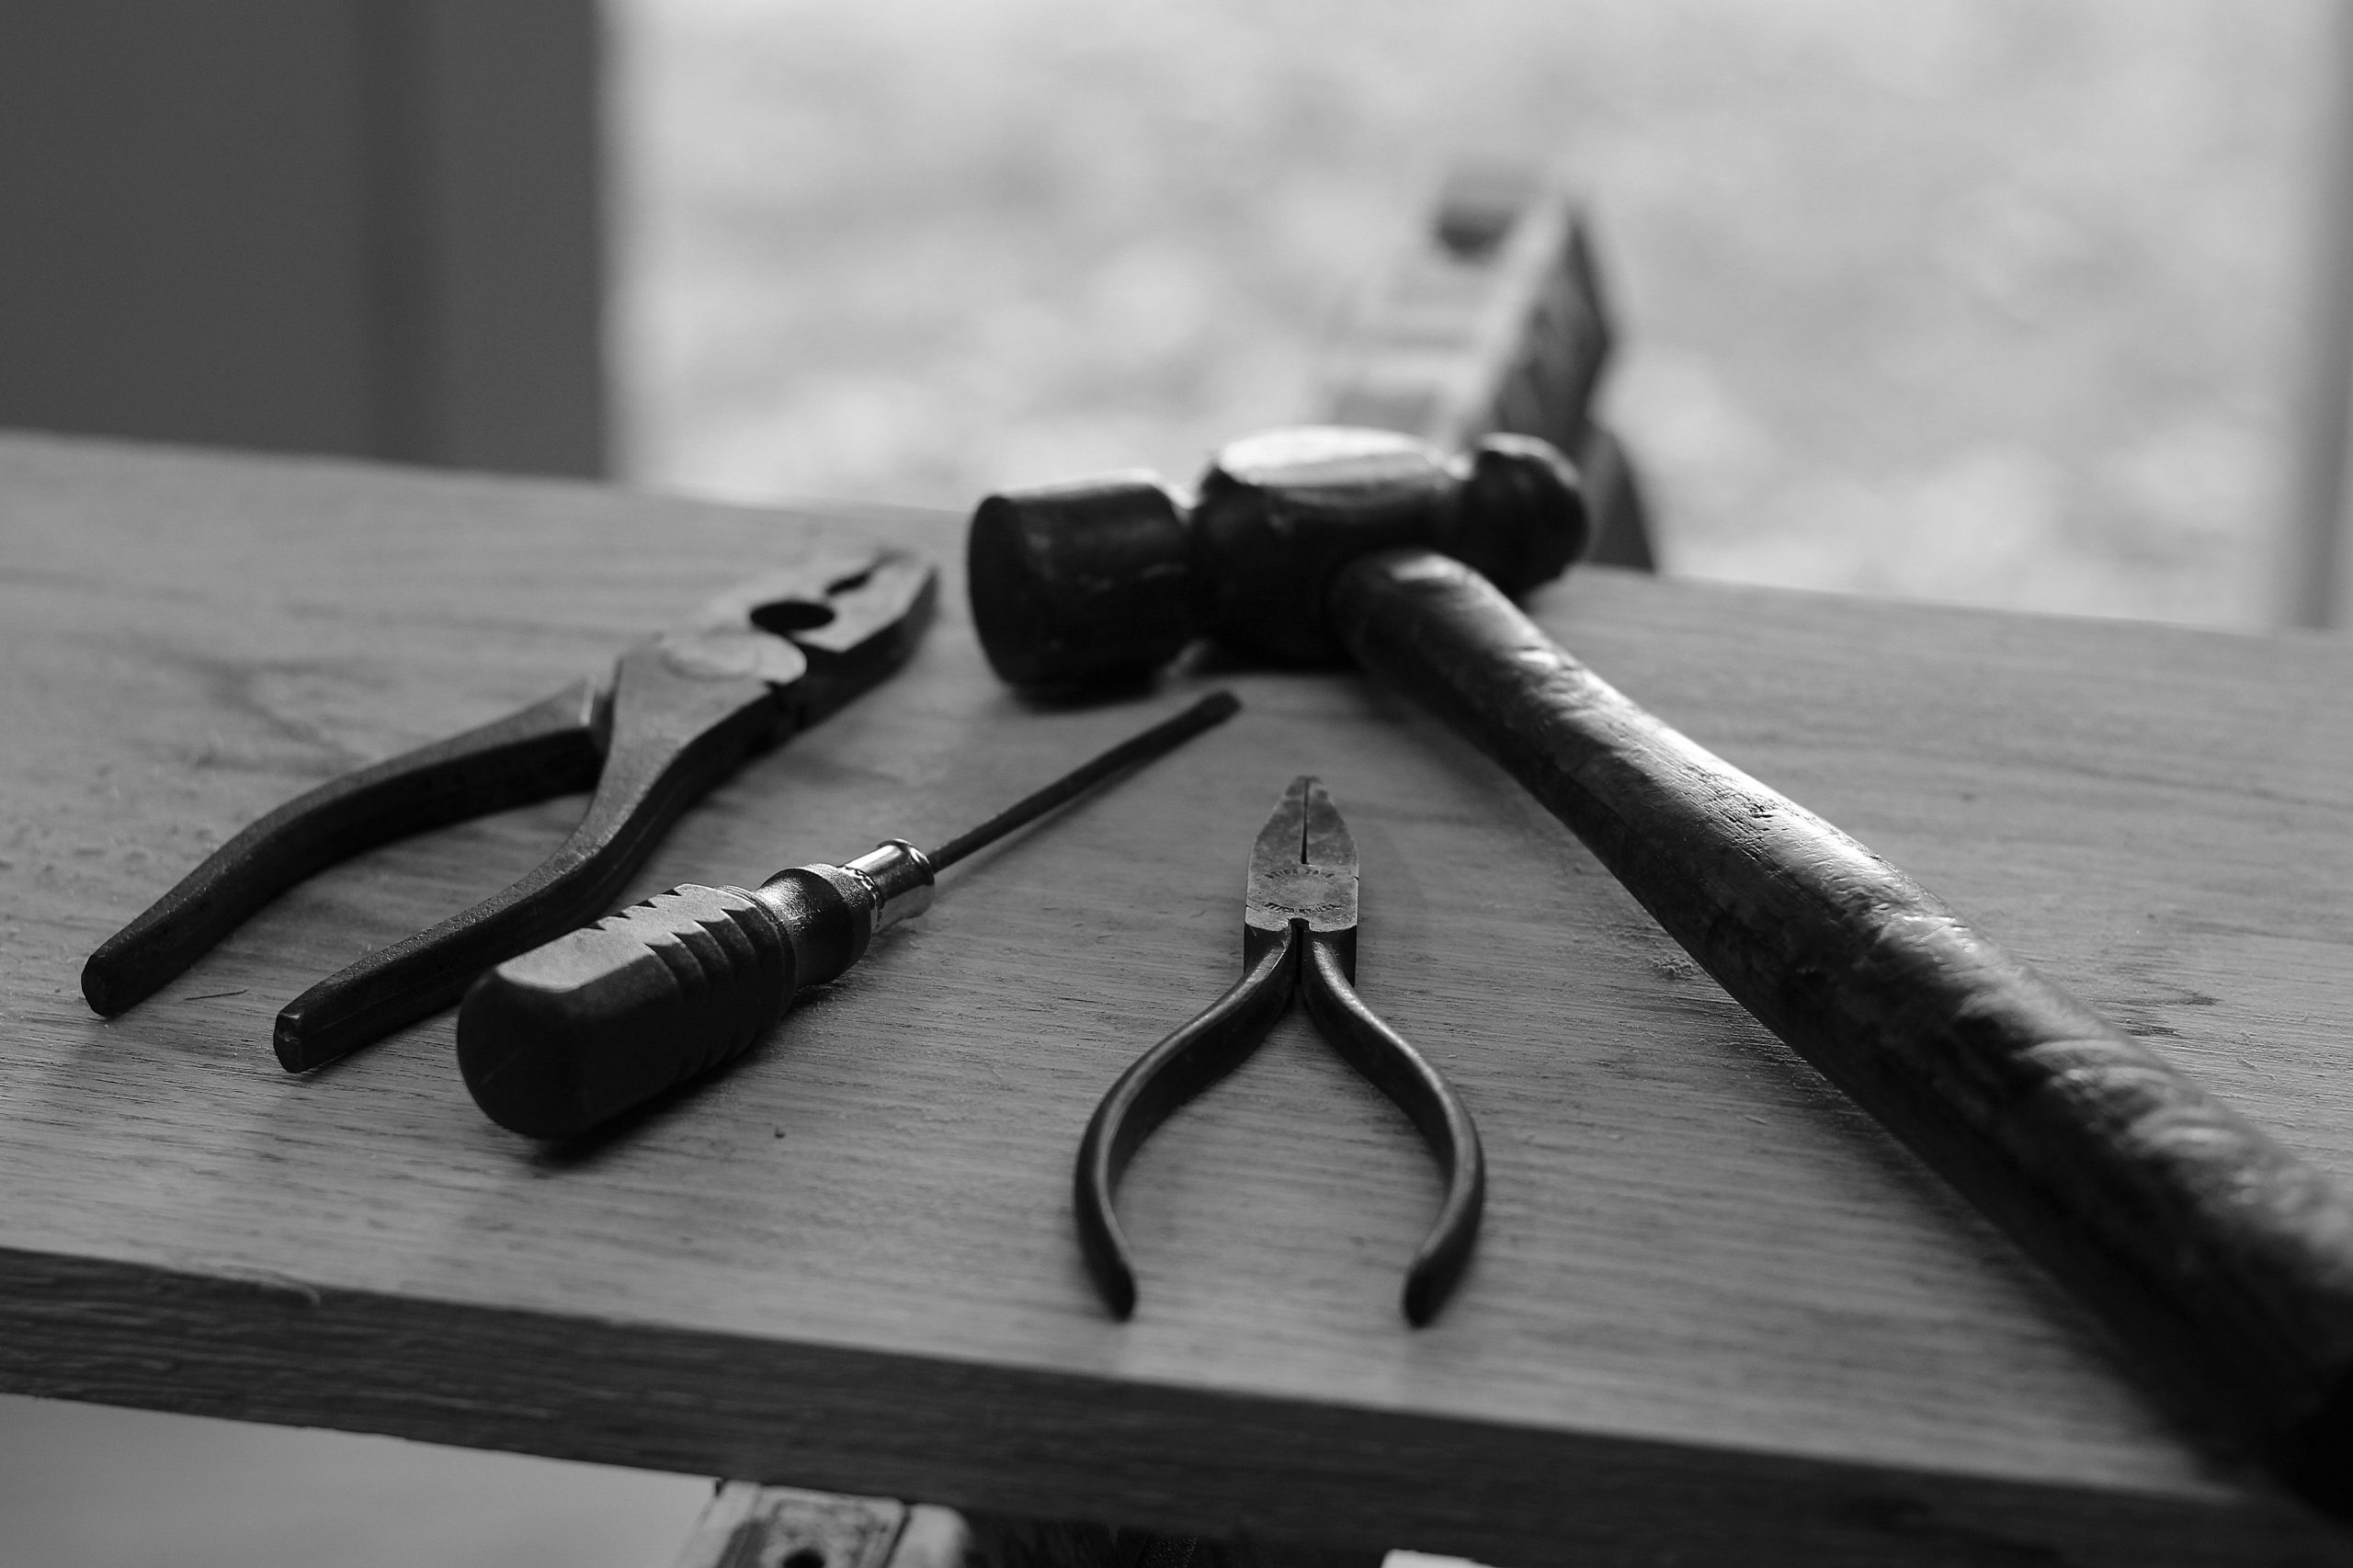 Tools you need for better results